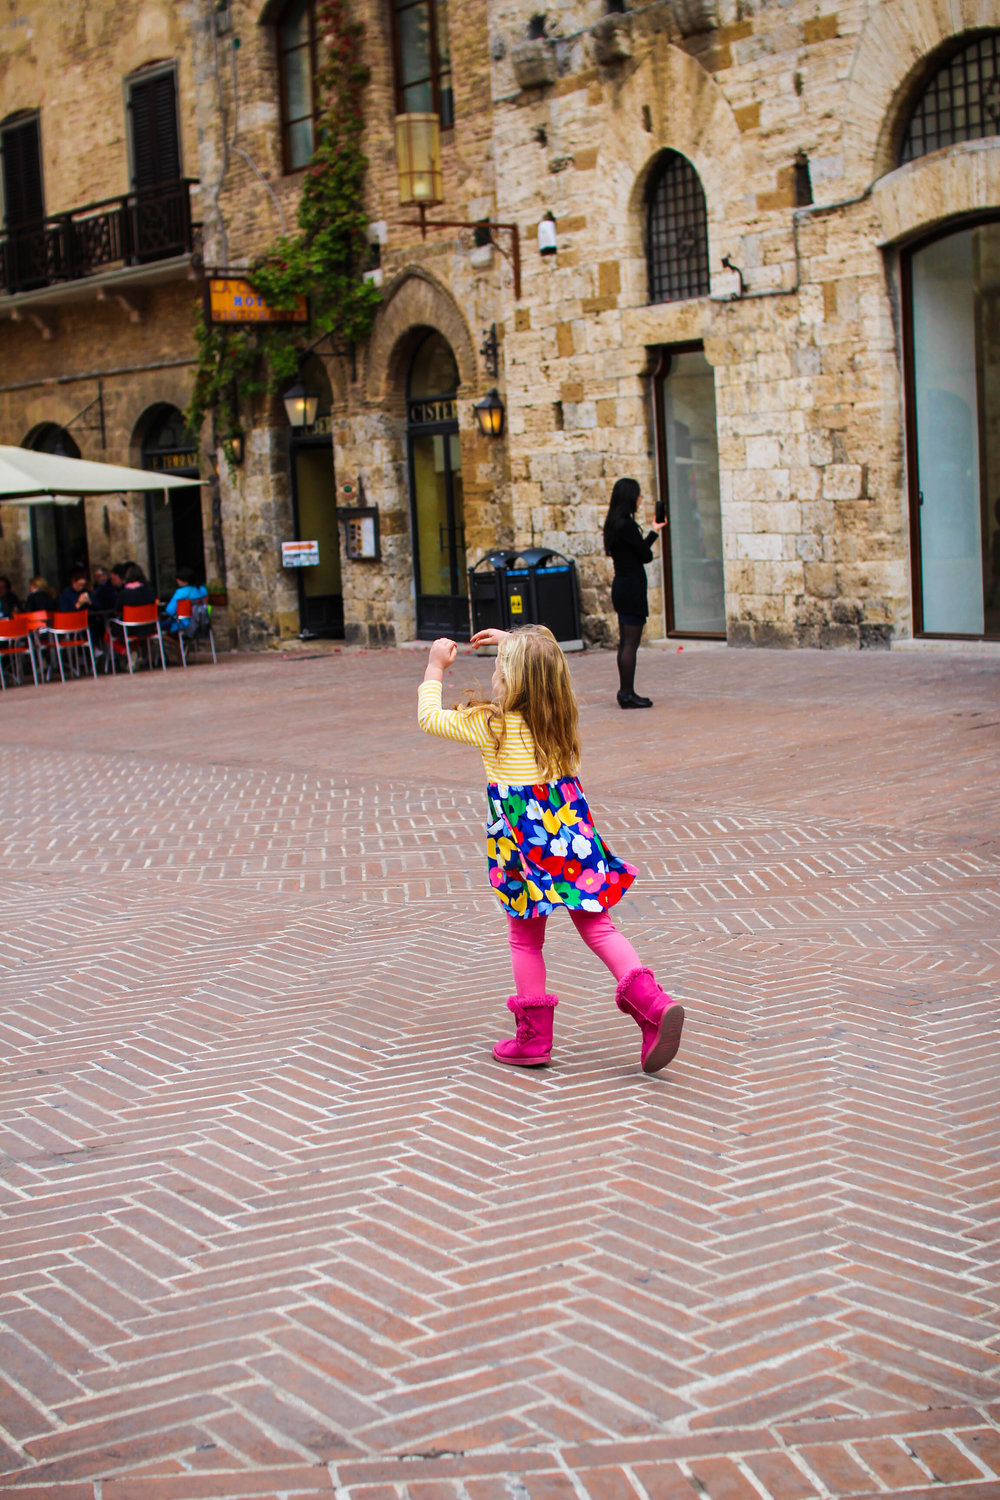 Ballet in the town square of San Gimignano post-gelato